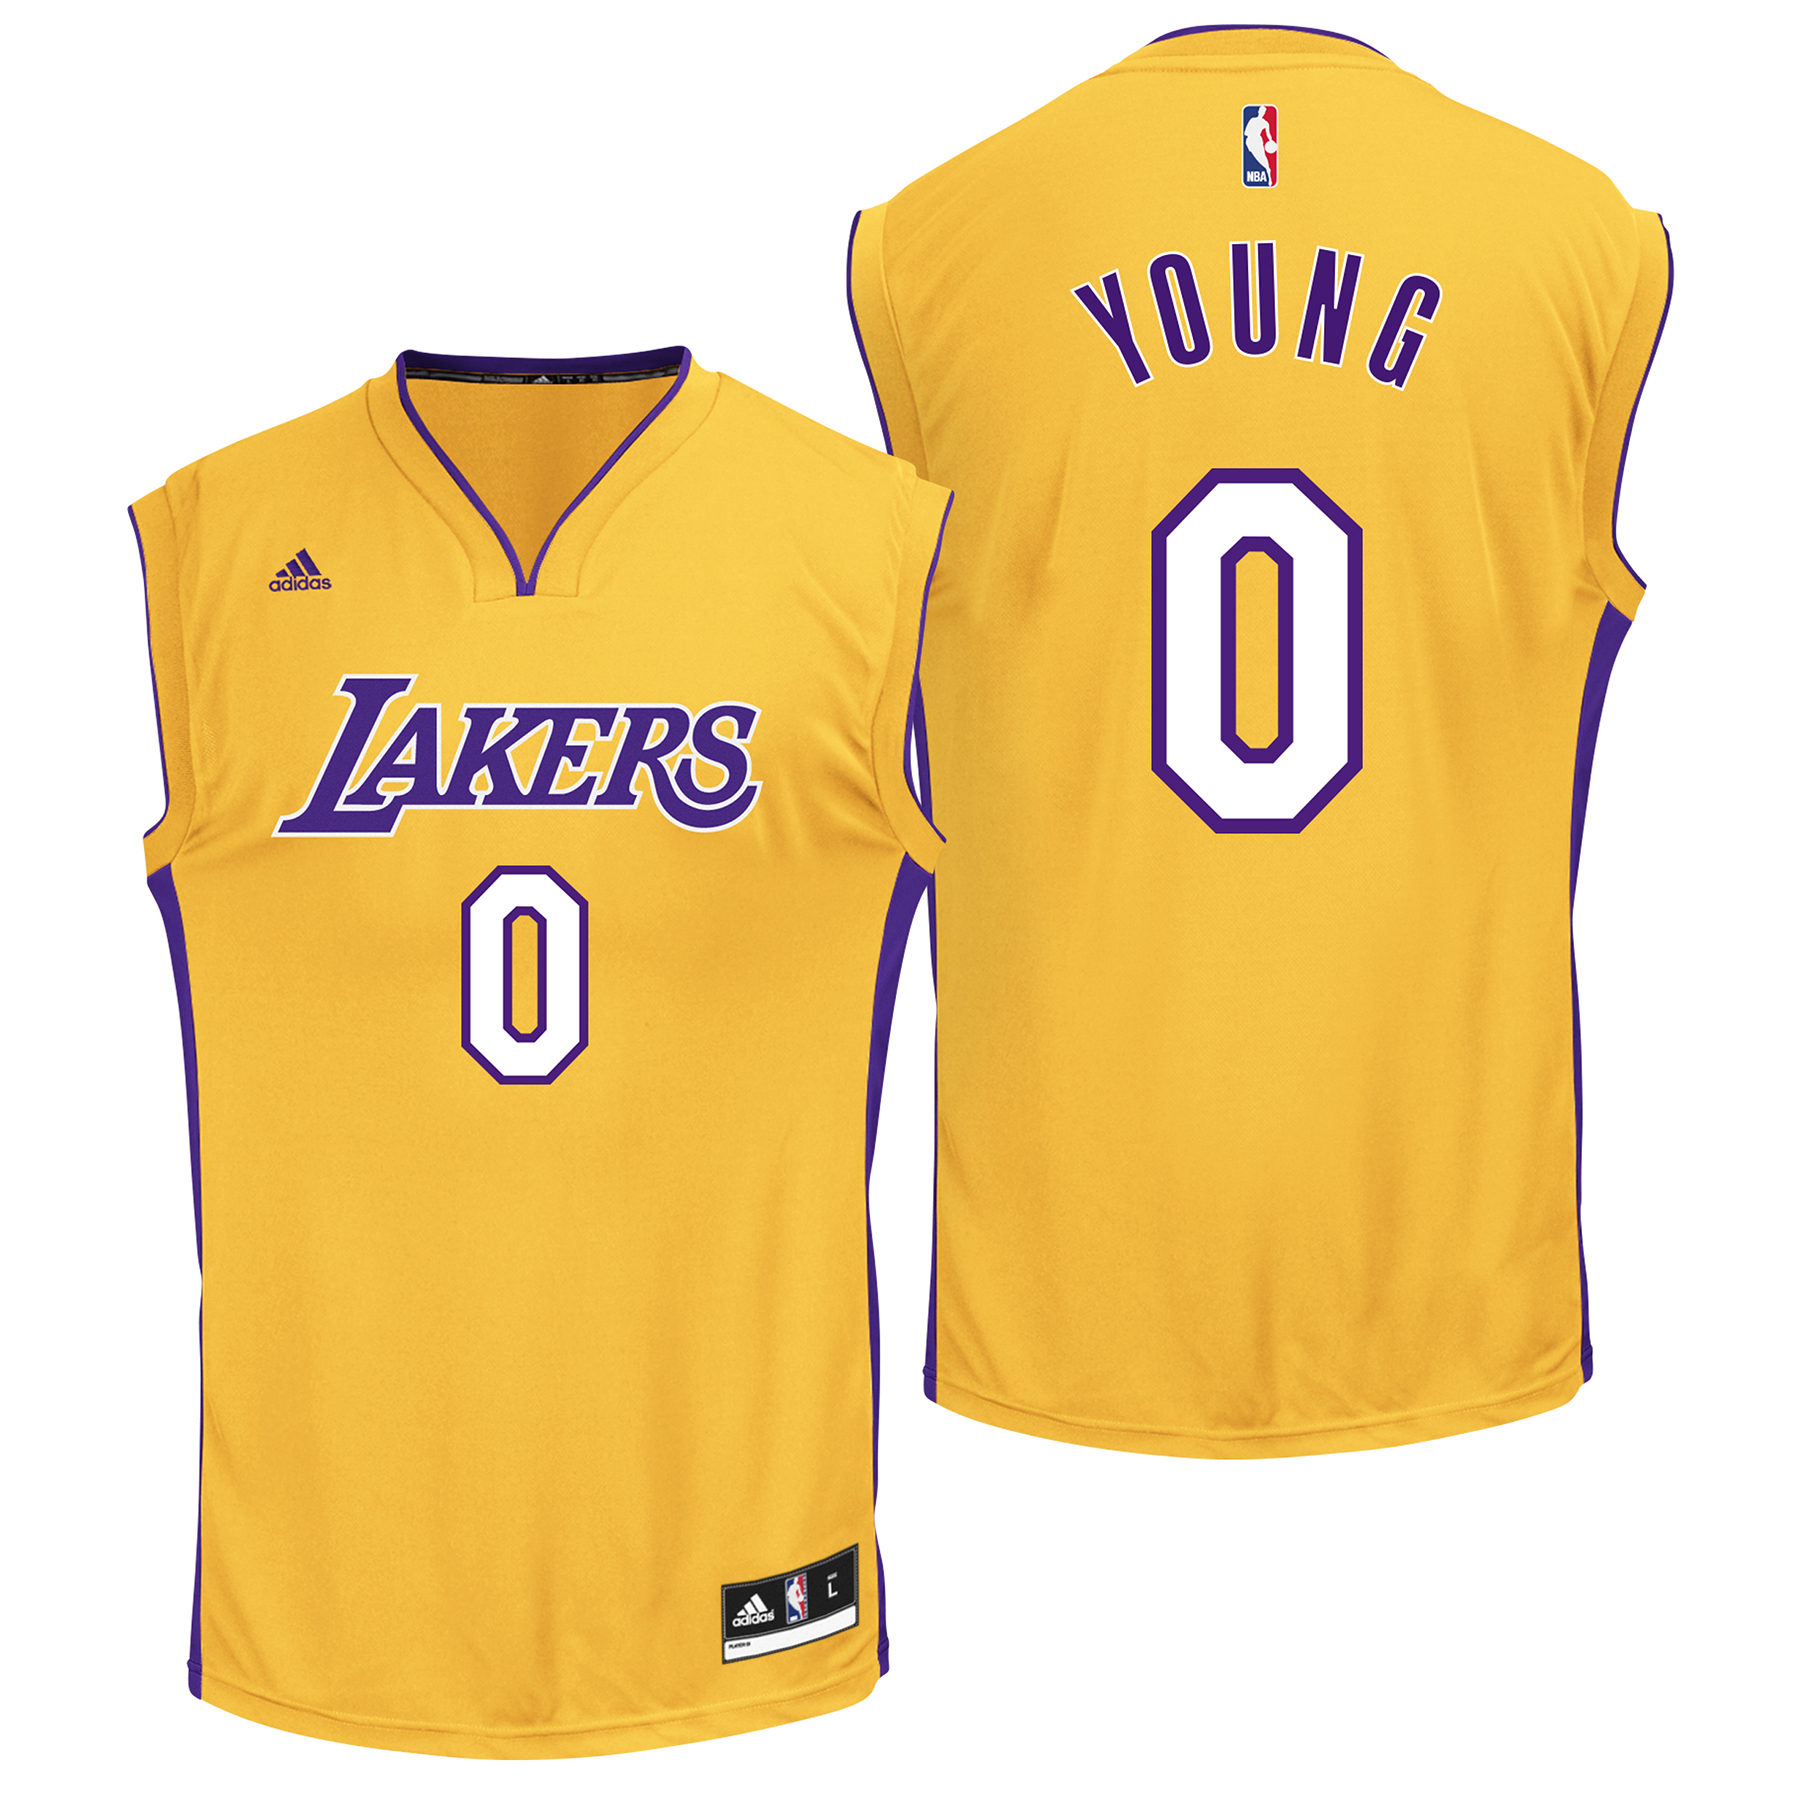 Los Angeles Lakers Home Replica Jersey - Nick Young - Youth